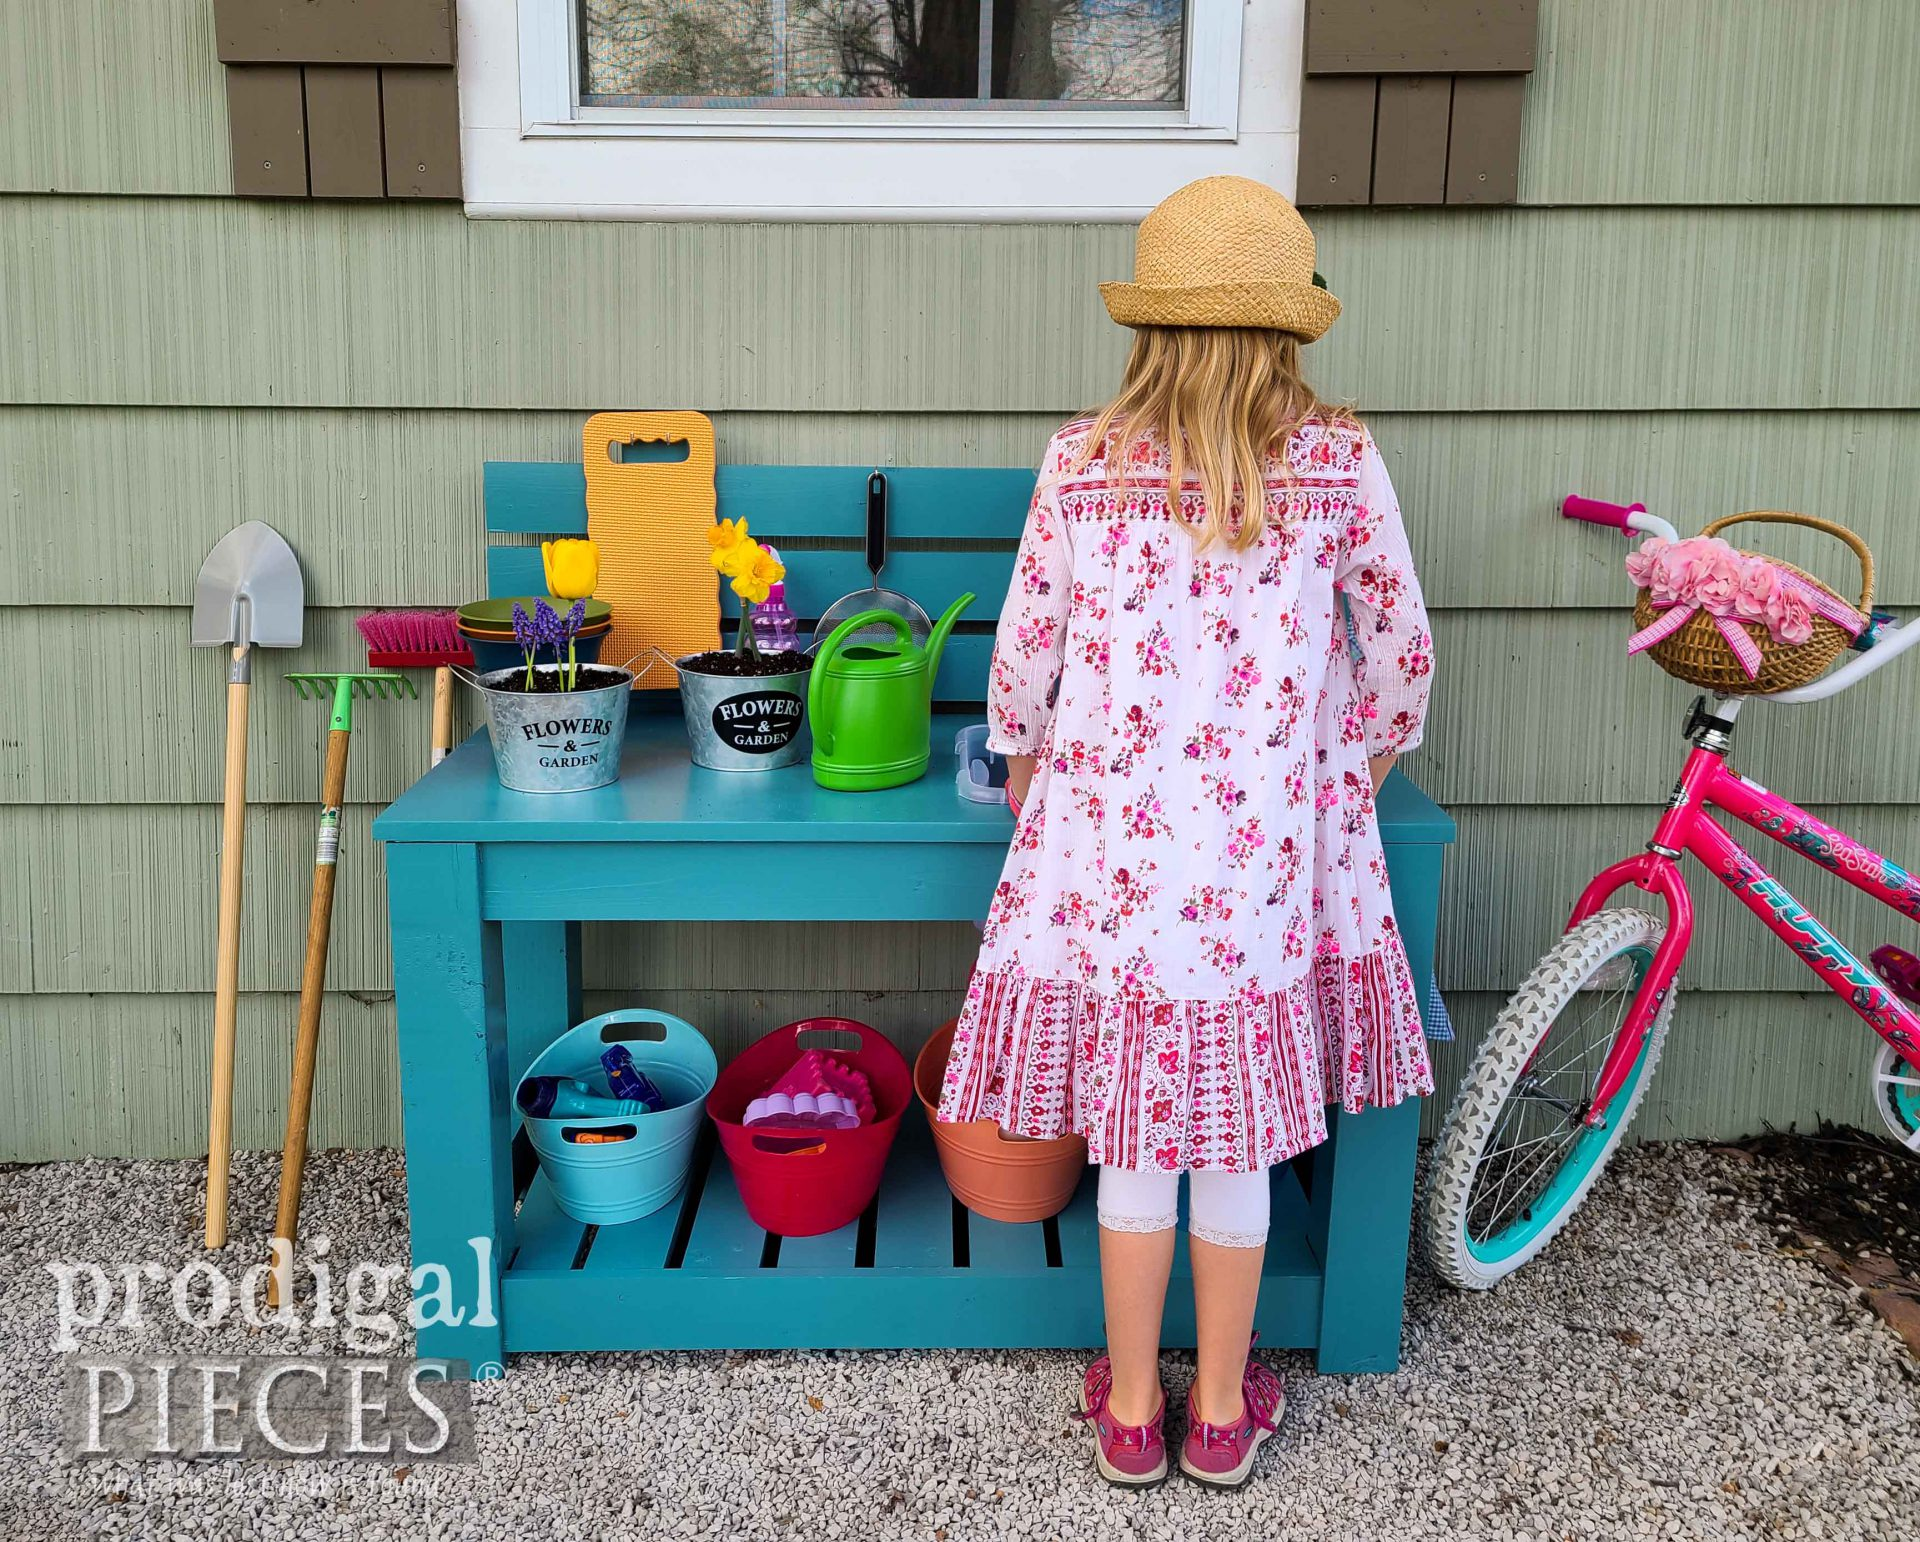 Backyard Upcycled Mud Bar Play Area by Larissa & JC of Prodigal Pieces | prodigalpieces.com #prodigalpieces #kids #play #diy #upcycled